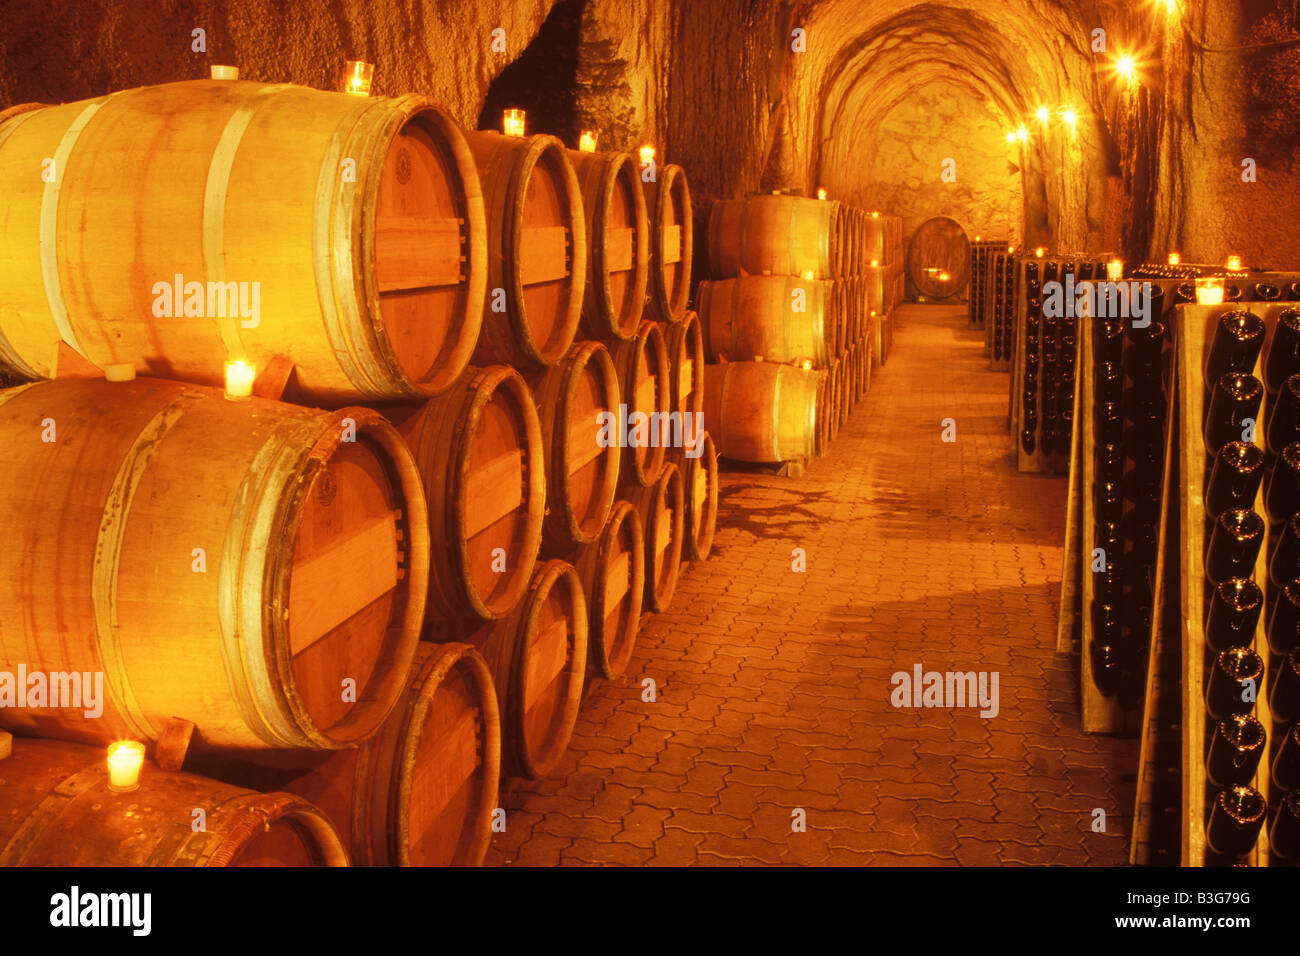 champagne caves S Anderson Winery Napa Valley California - Stock Image